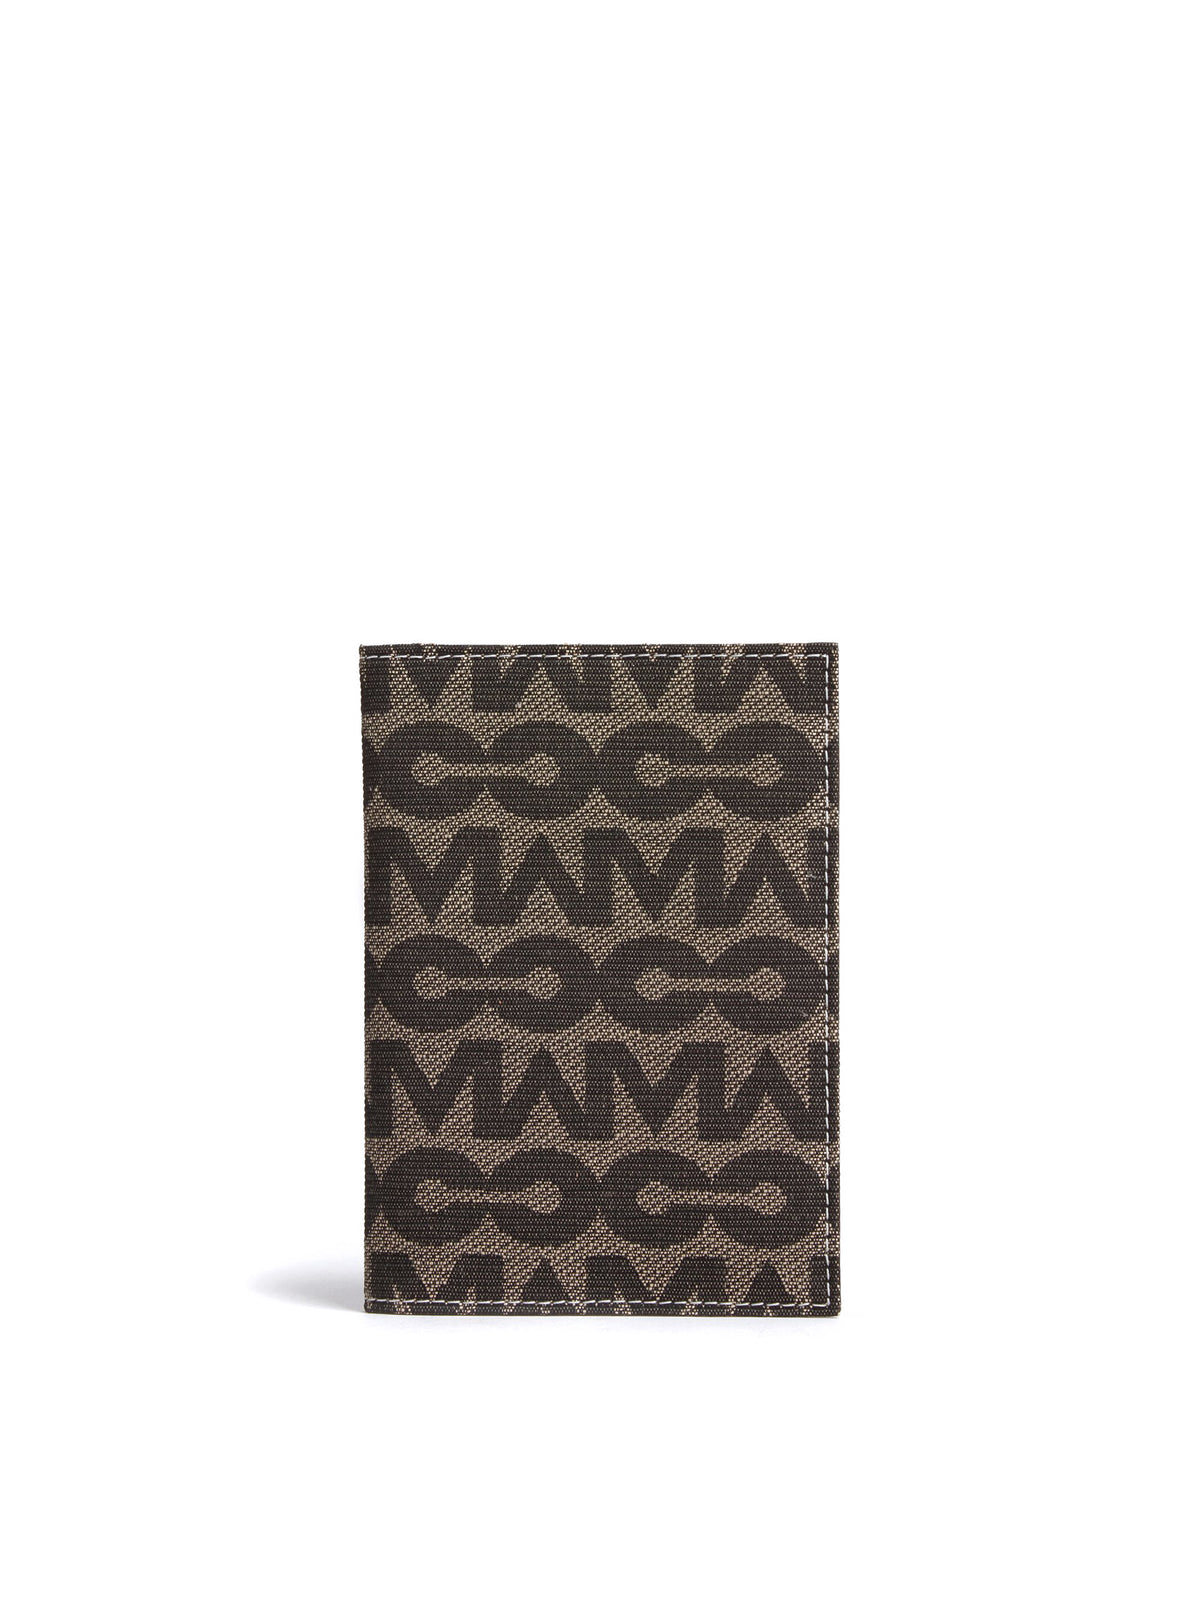 MC Jacquard & Leather Passport Cover